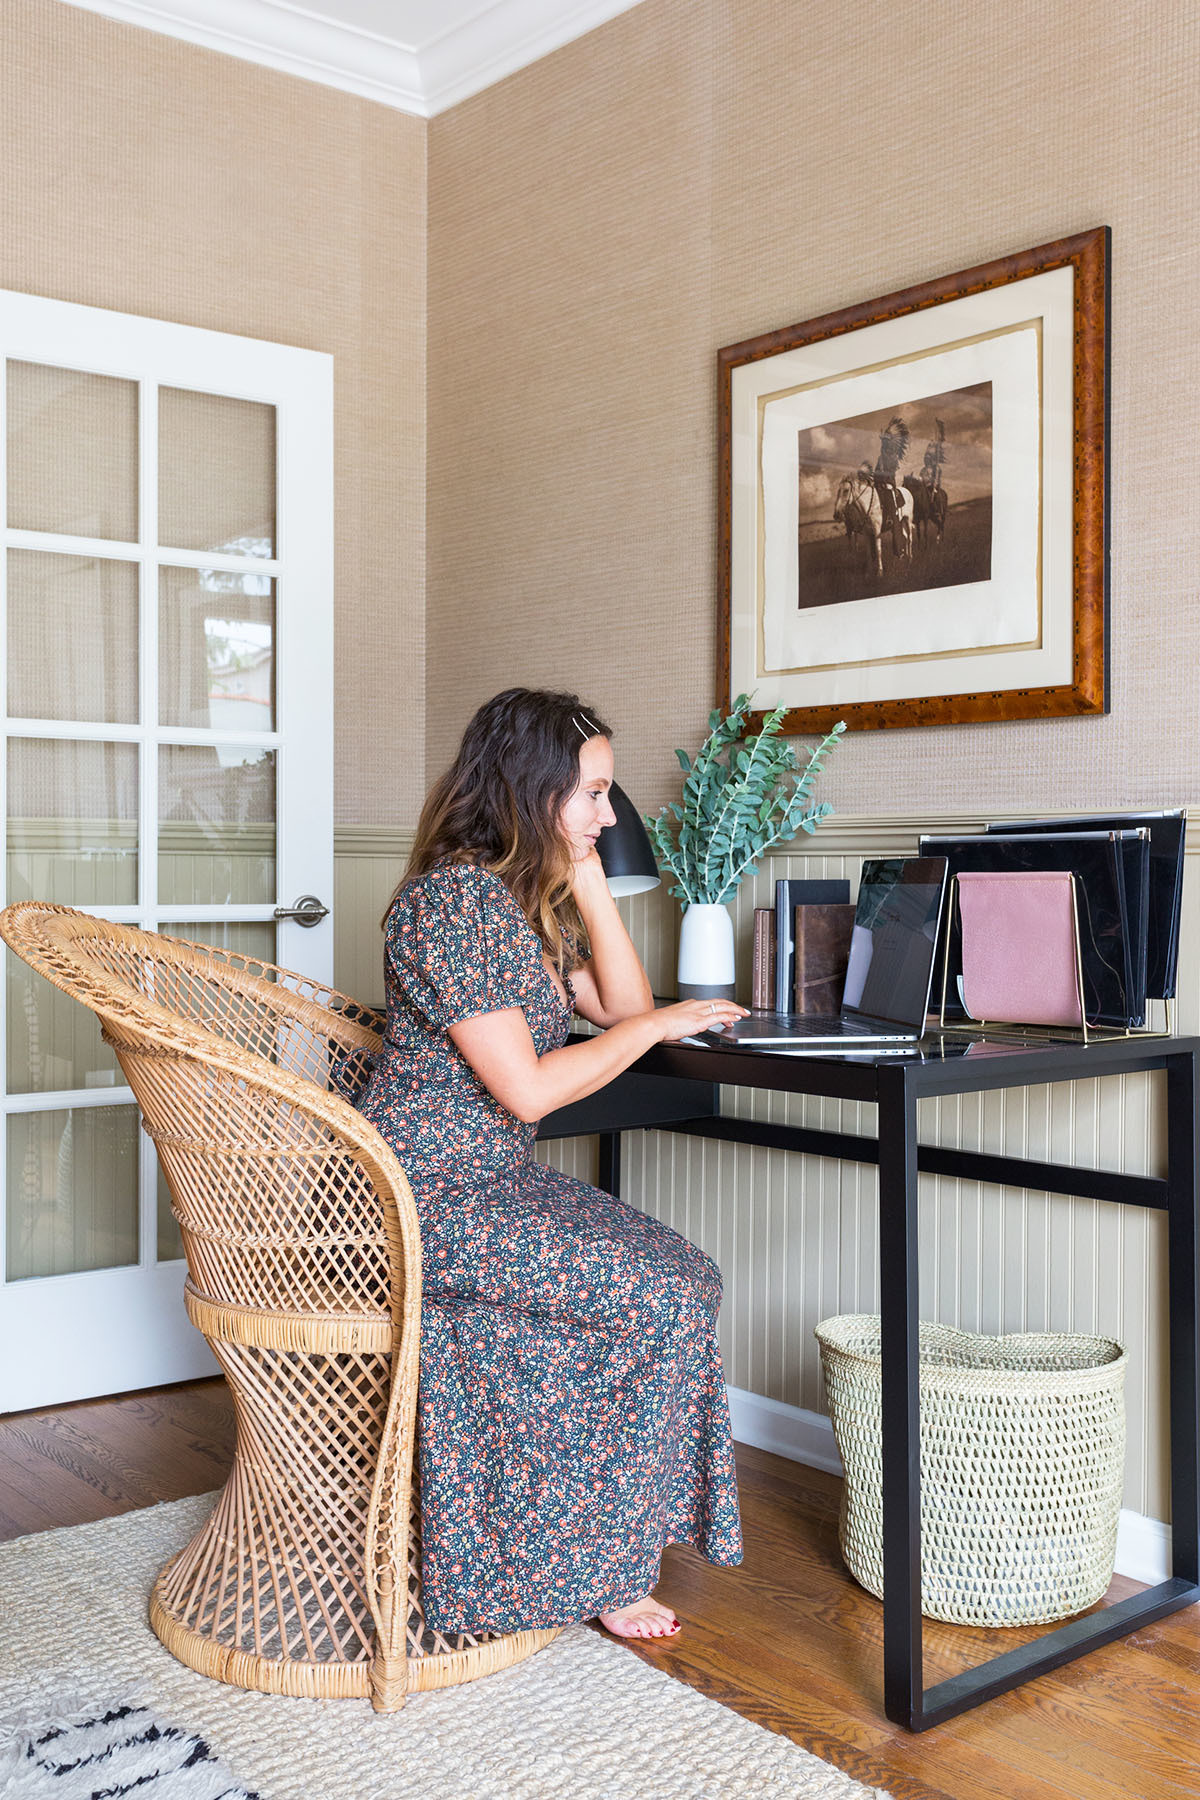 The designer created a study nook to ensure she could comfortably work from home, using an Urban Outfitters rattan chair and a minimal desk by AllModern. Anthropologie File Holder.